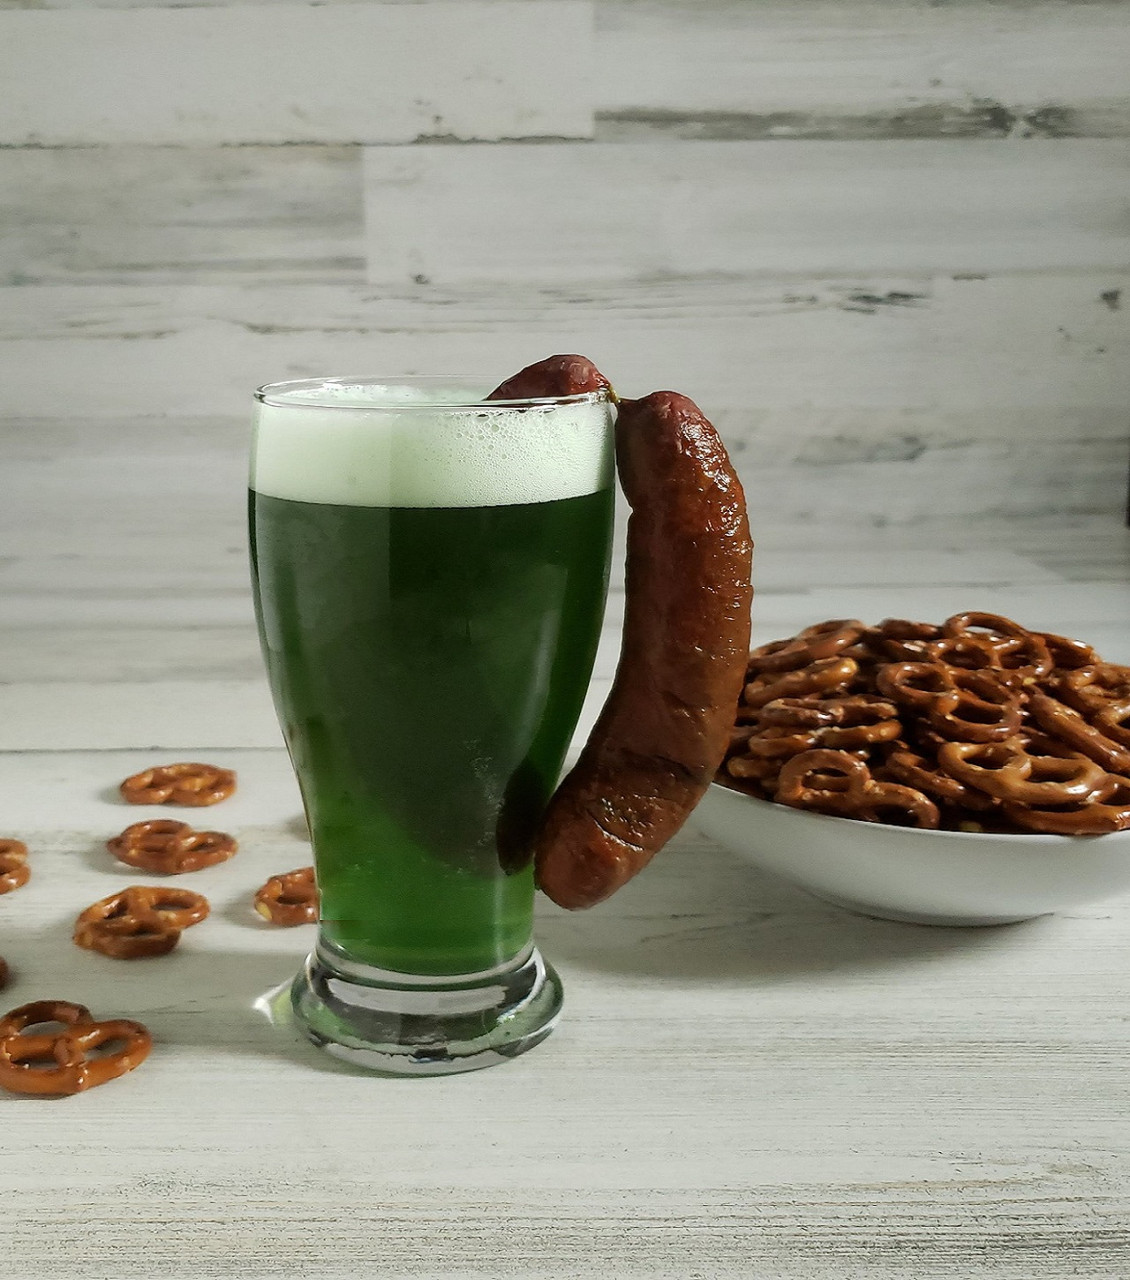 Celebrate St. Patty's Day with a green beer and Landjaeger combo.